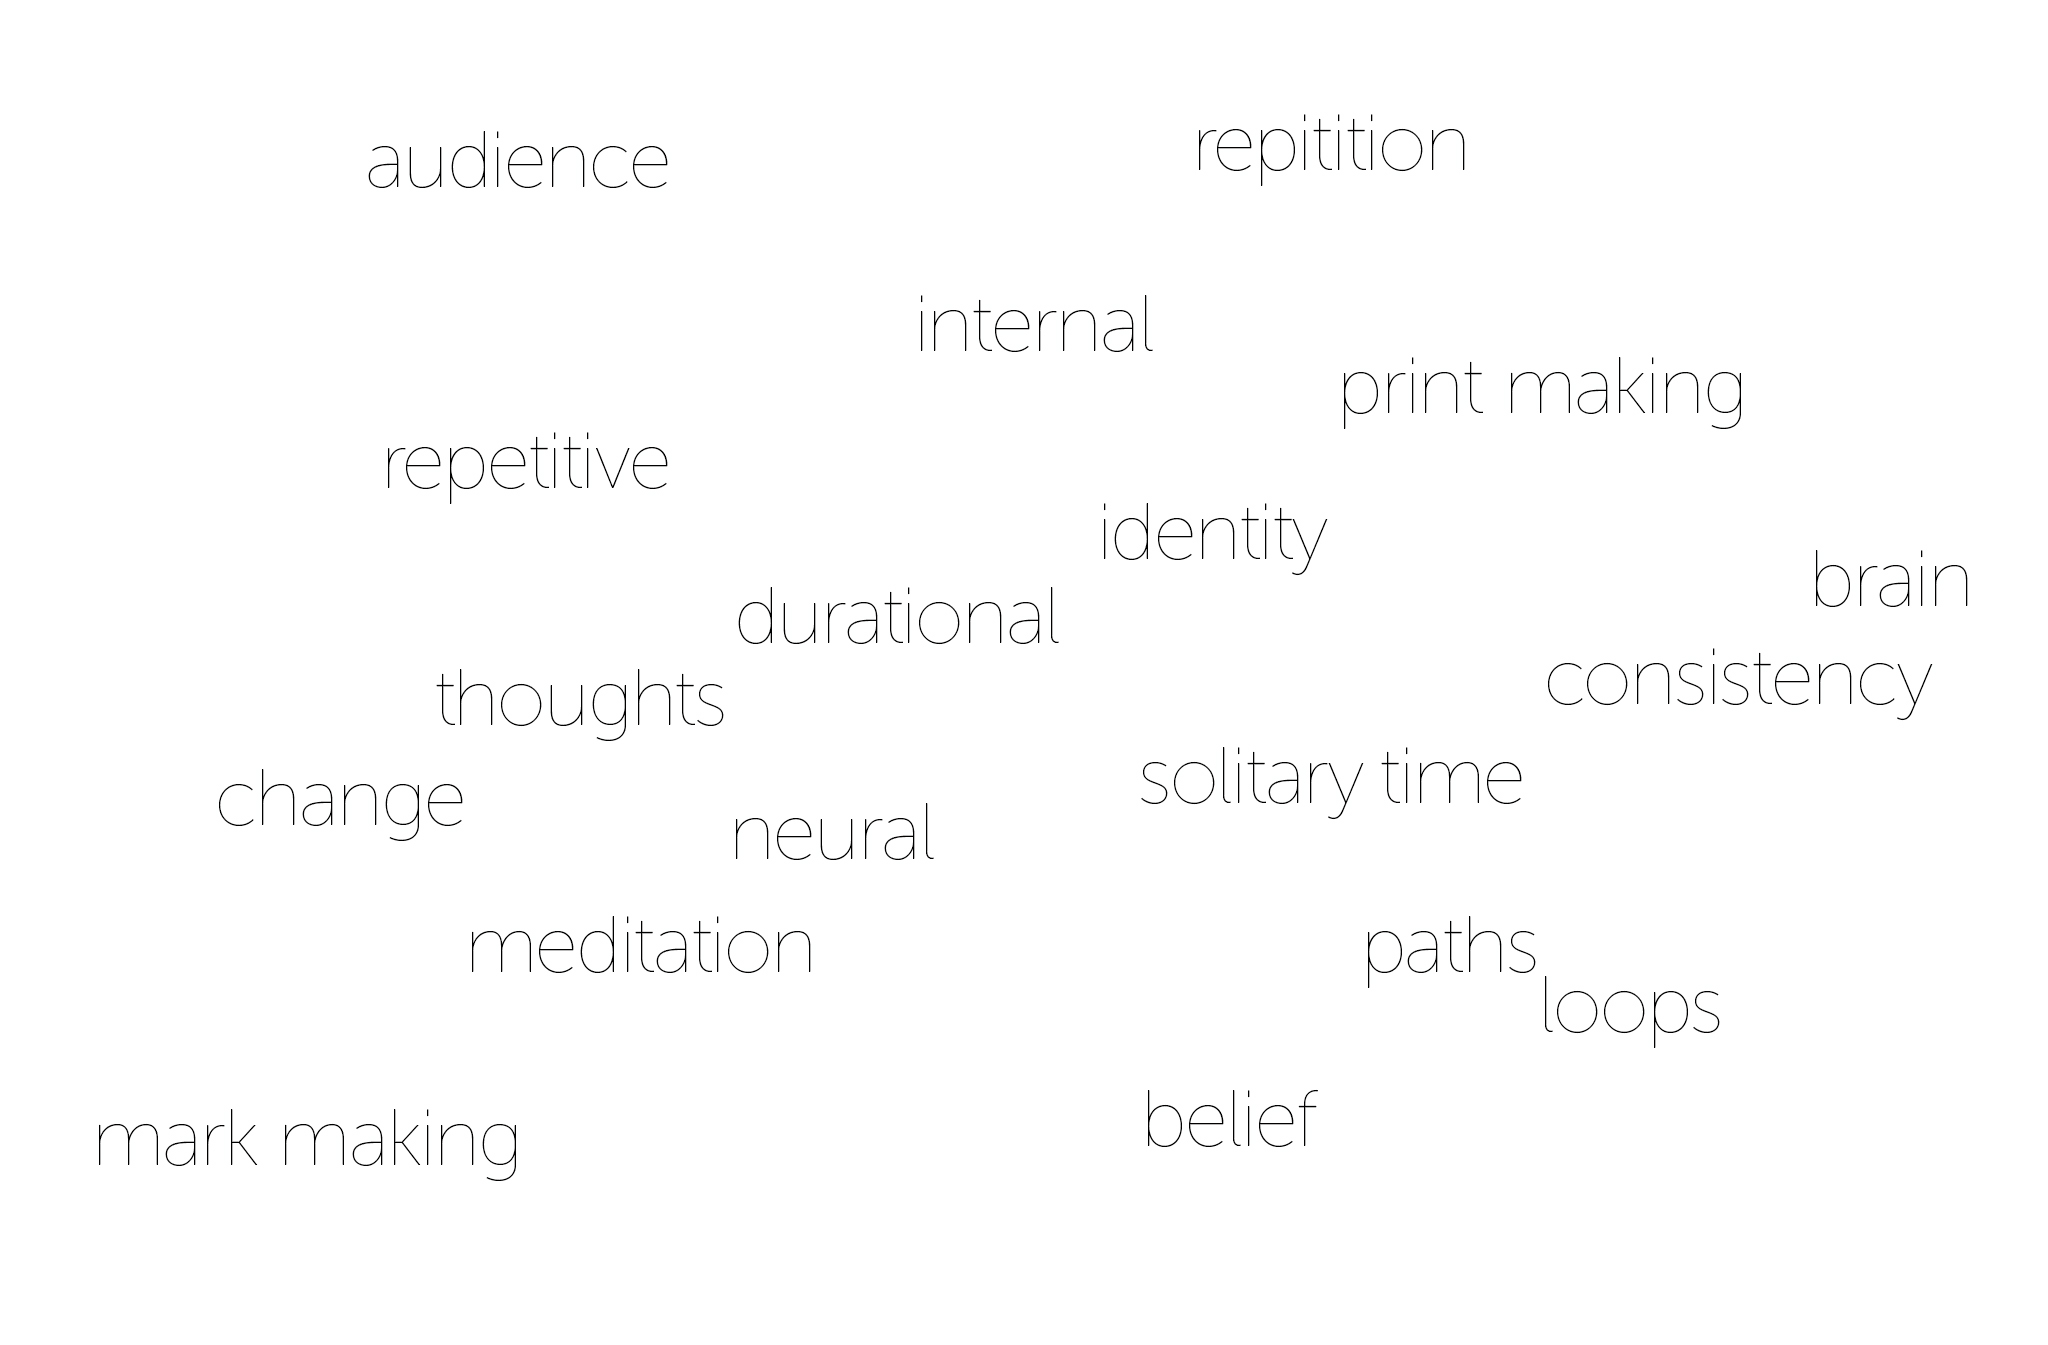 Word mapping.